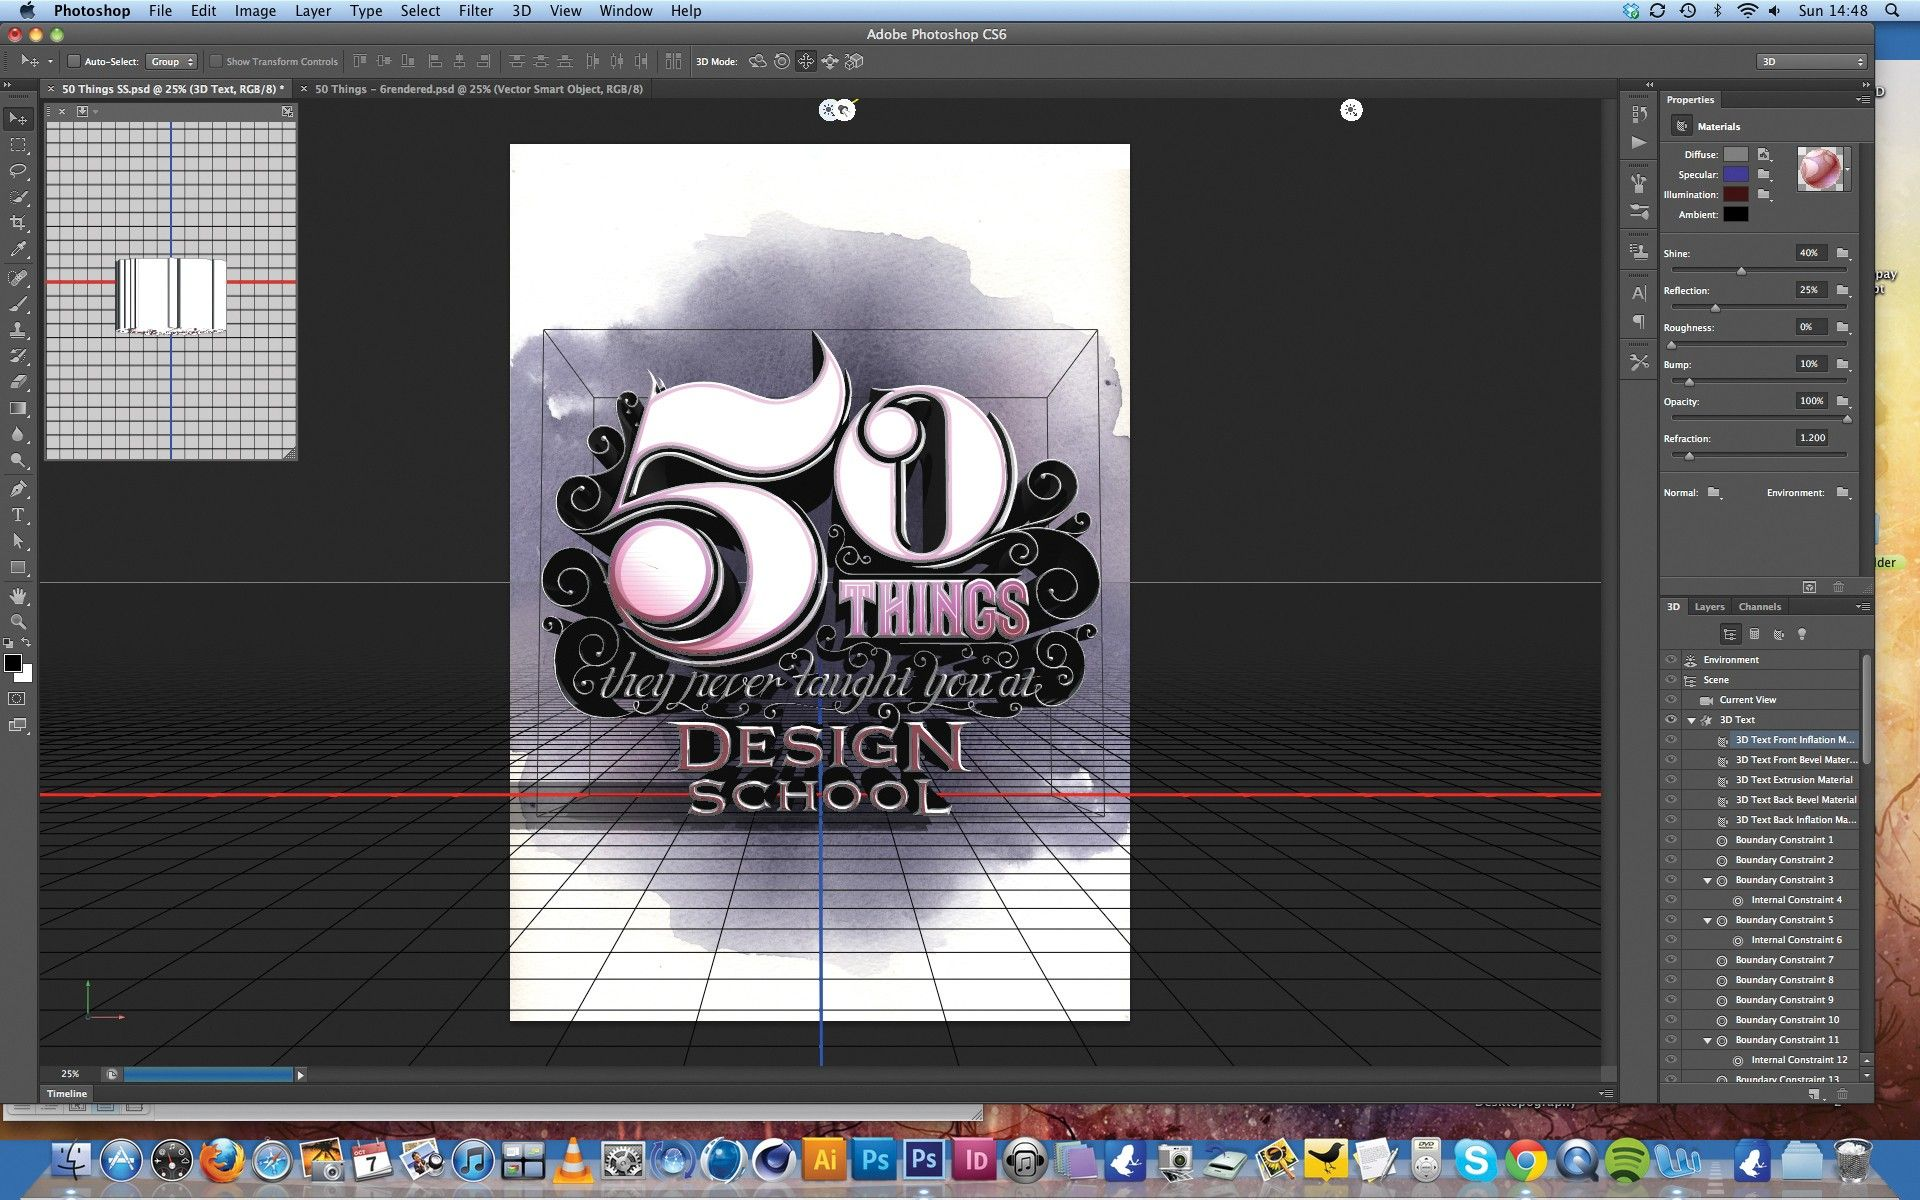 3d type tutorial create 3d type using photoshop cs6 tutorials 3d type tutorial create 3d type using photoshop cs6 baditri Choice Image